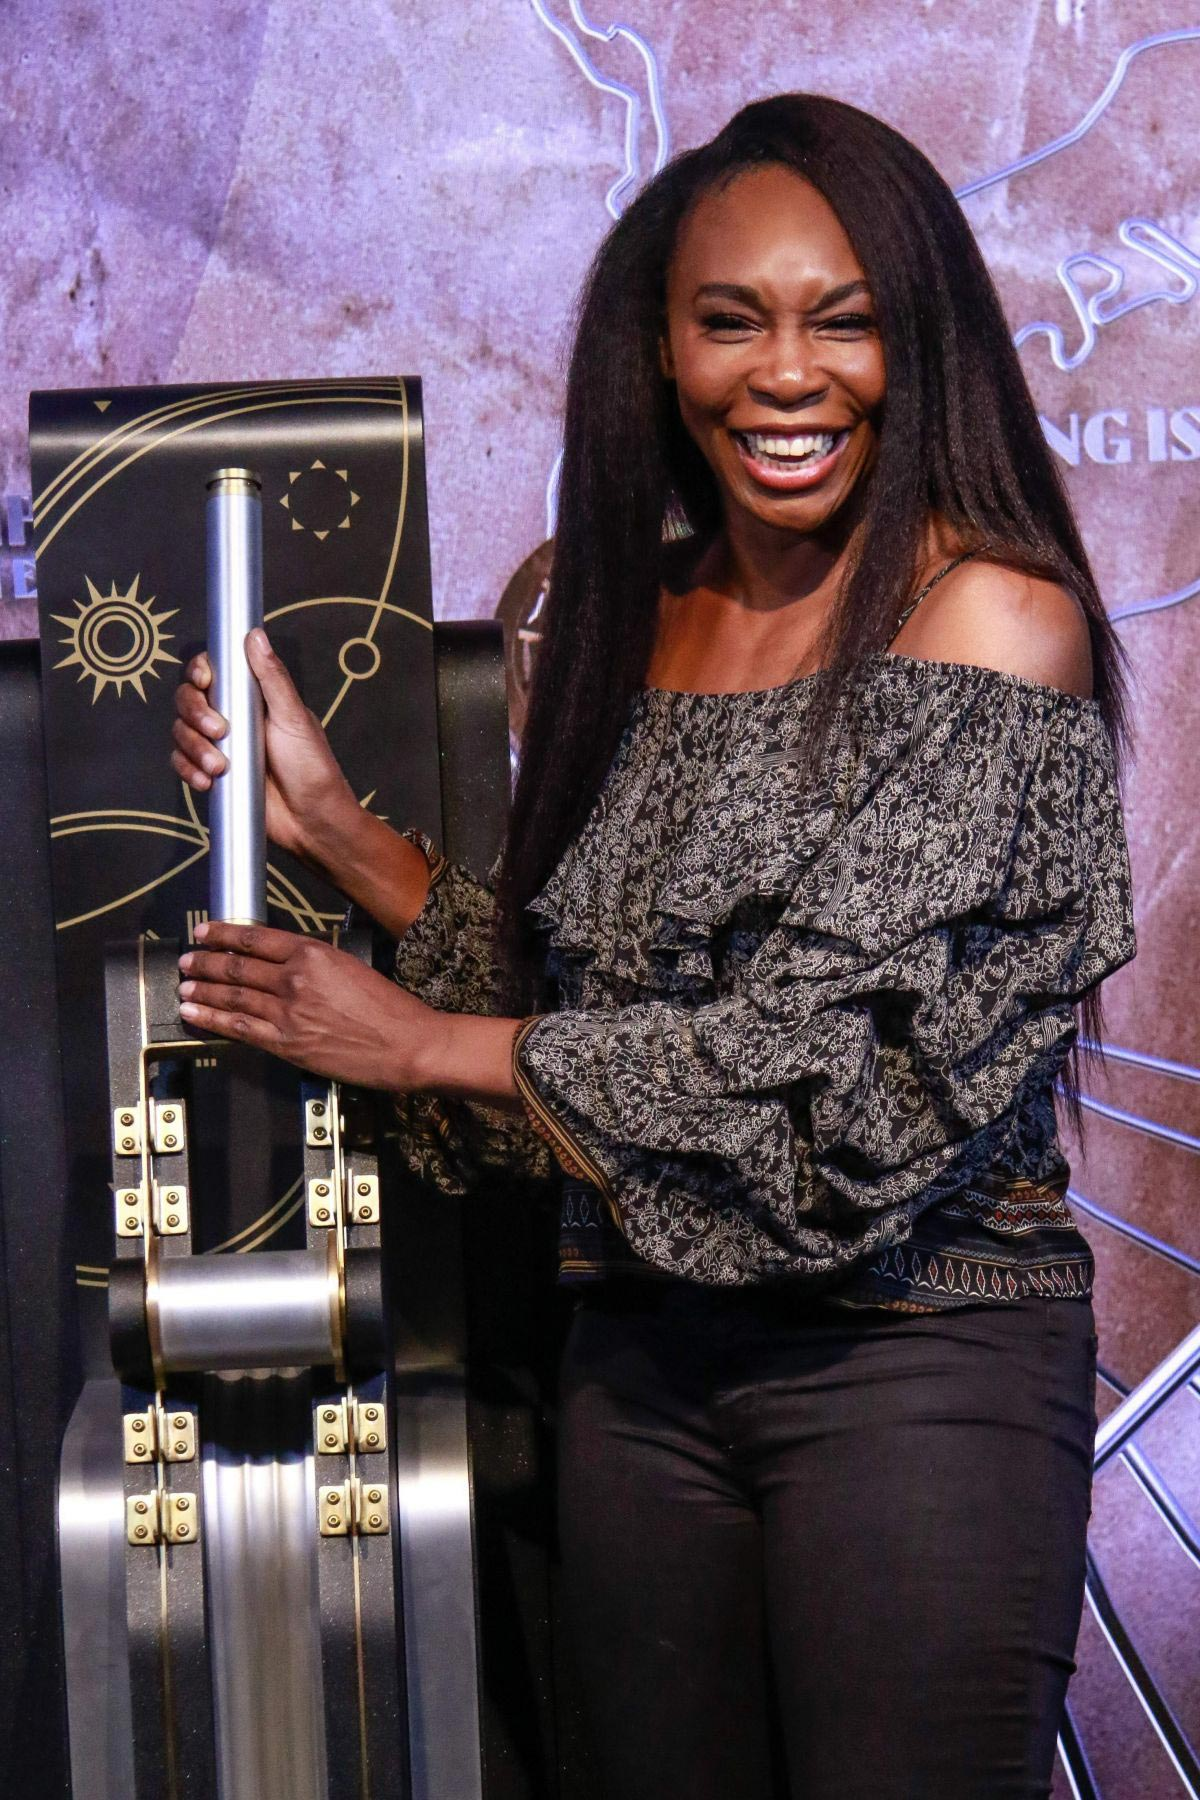 Venus Williams Lights Empire State Building in Support of Small Business 2018/11/21 1